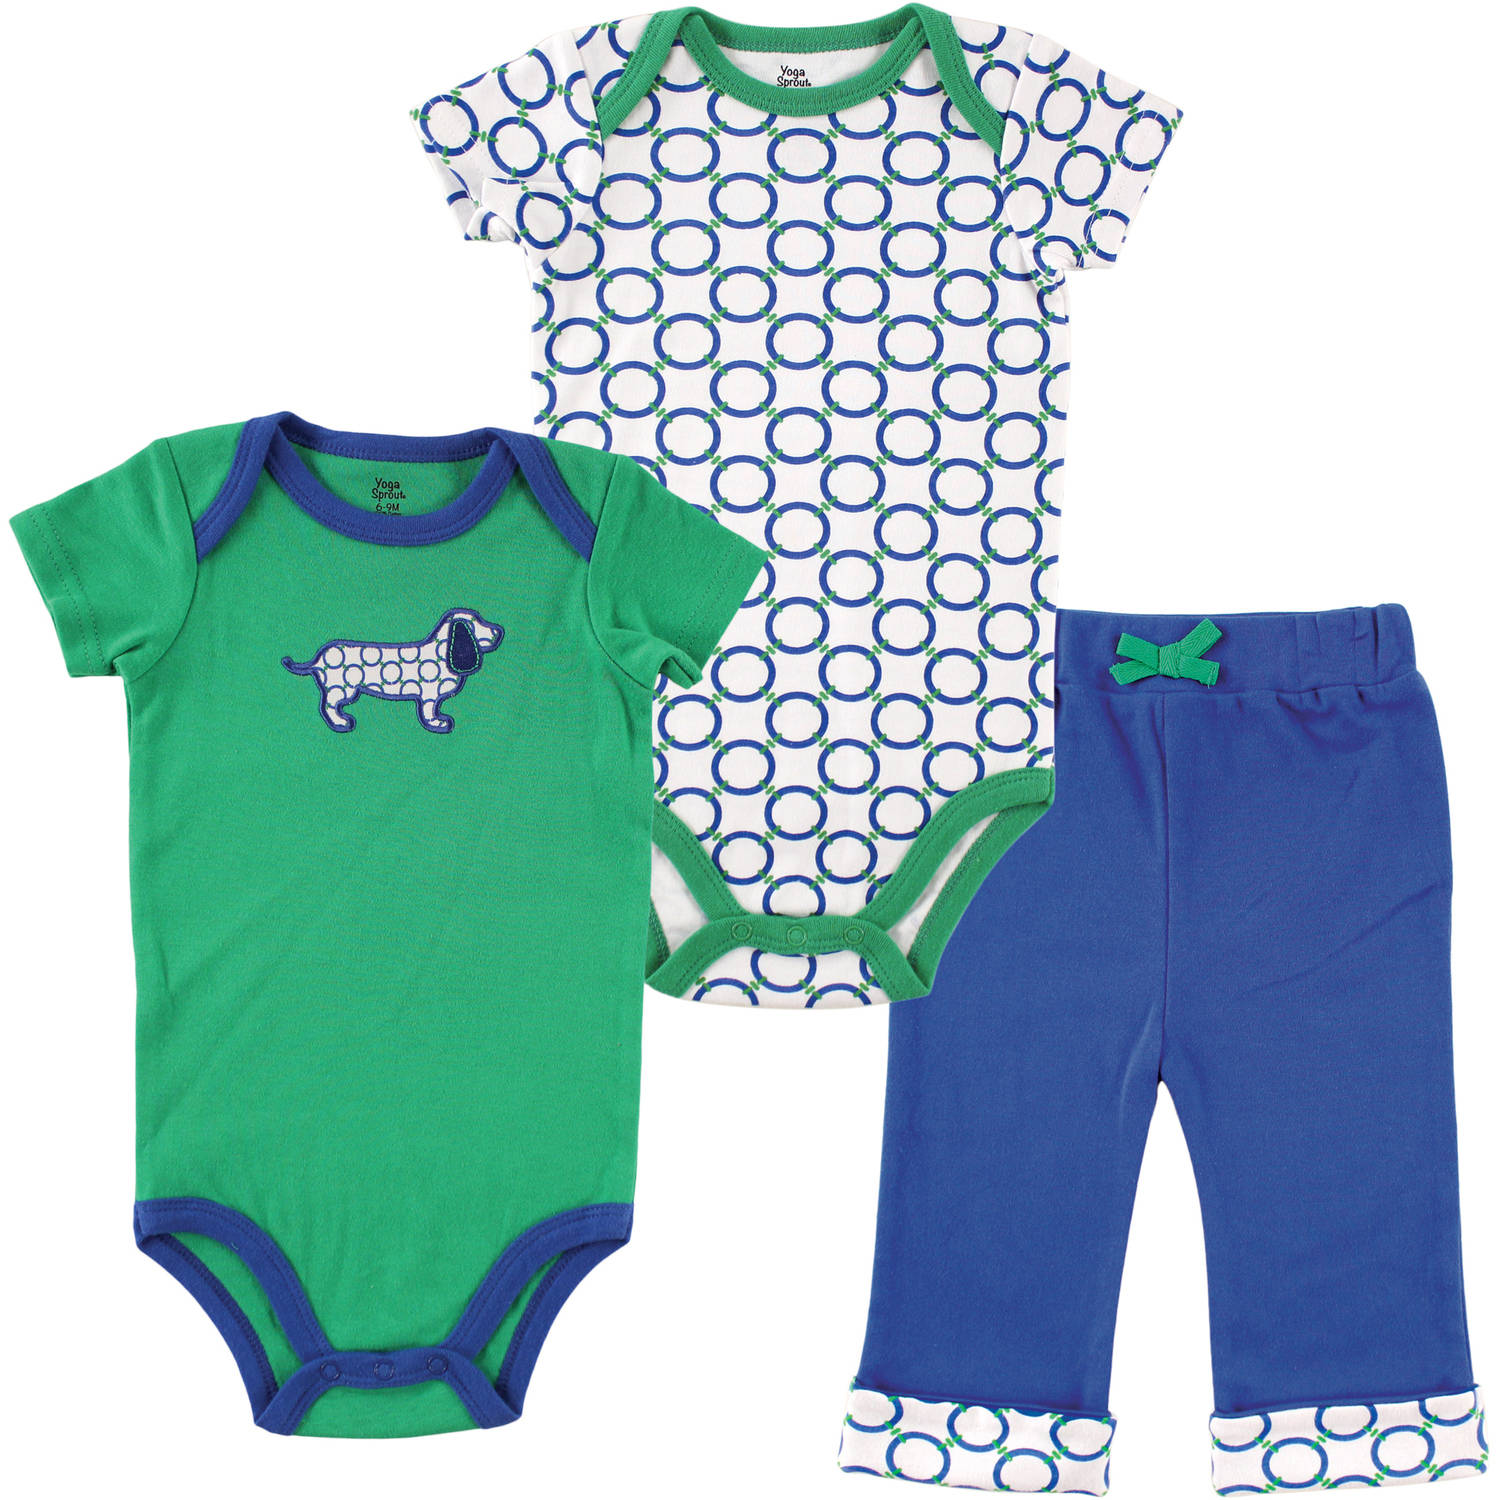 Yoga Sprout Newborn Baby Boys 2 Bodysuits & Pant - Dog